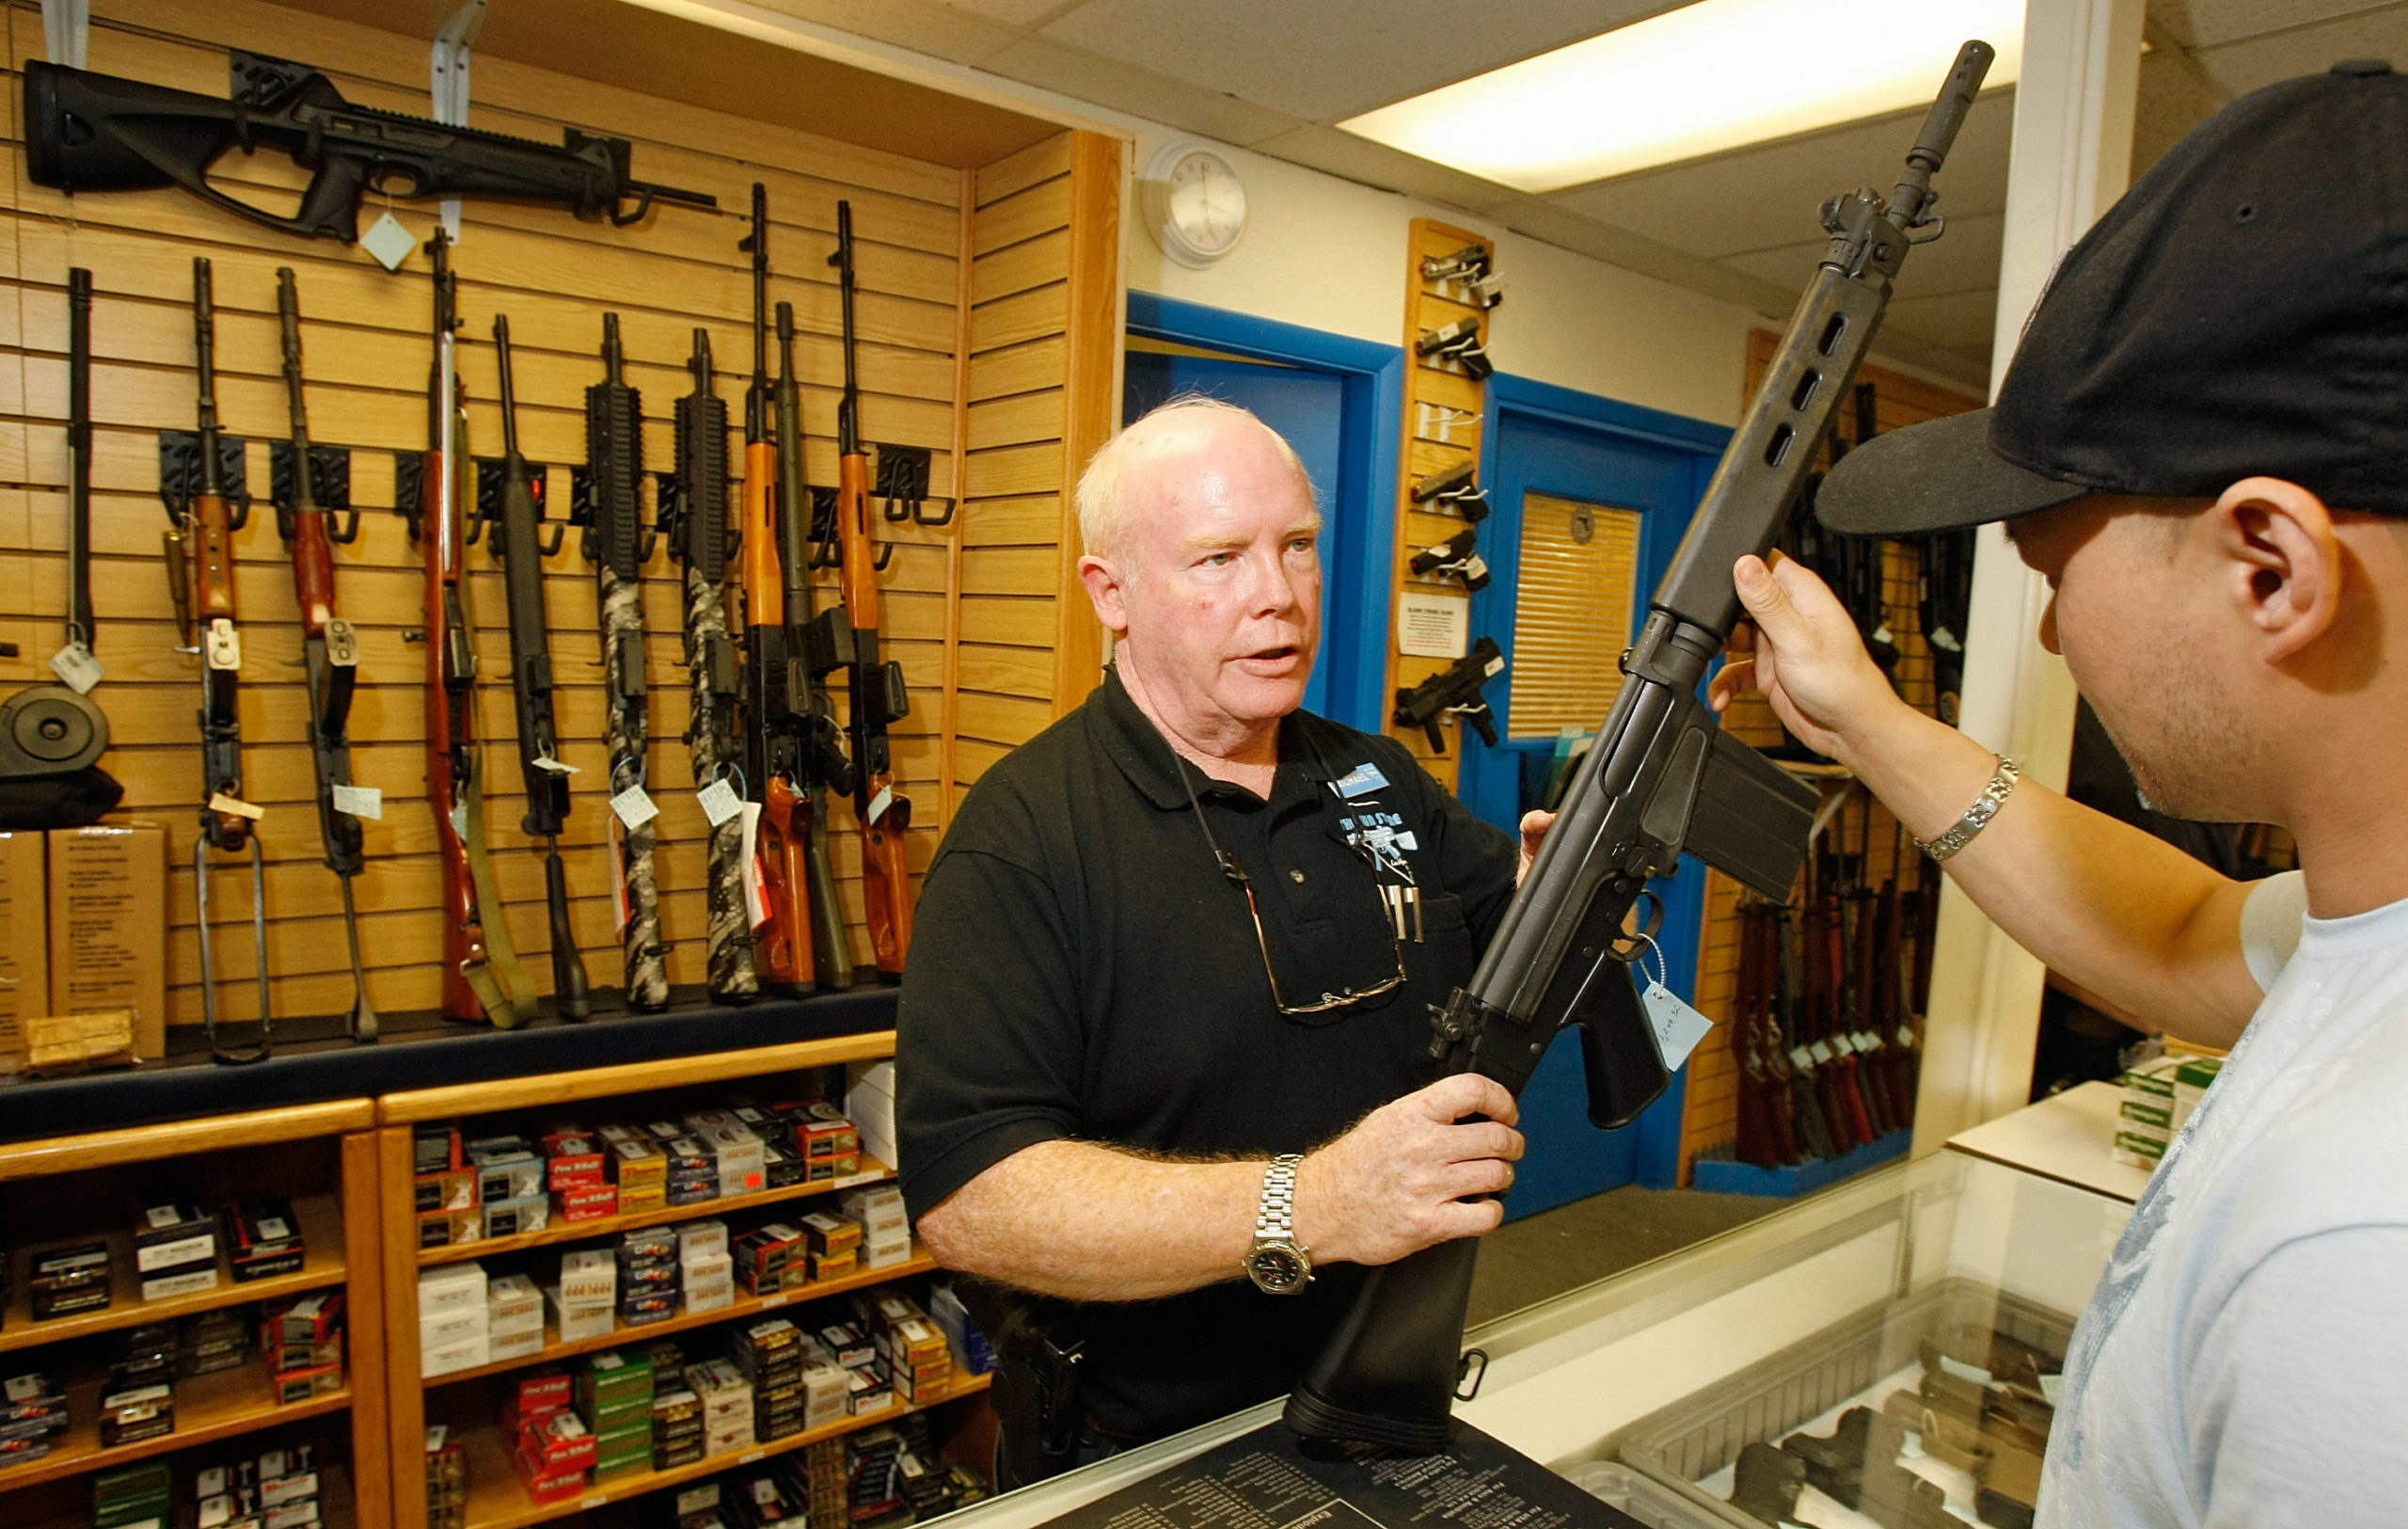 LAS VEGAS - NOVEMBER 14: The Gun Store sales associate Michael Rogers (L) shows Won Kim of Nevada a rifle November 14, 2008 in Las Vegas, Nevada. Store manager Cliff Wilson said he's seen a large spike in sales since Barack Obama was elected president on November 4, with customers citing fears about the president-elect's record on firearms. The election, combined with a slumping economy, has contributed to an overall increase of 25-30 percent in gun sales at the store, Wilson said. (Ethan Miller/Getty Images)